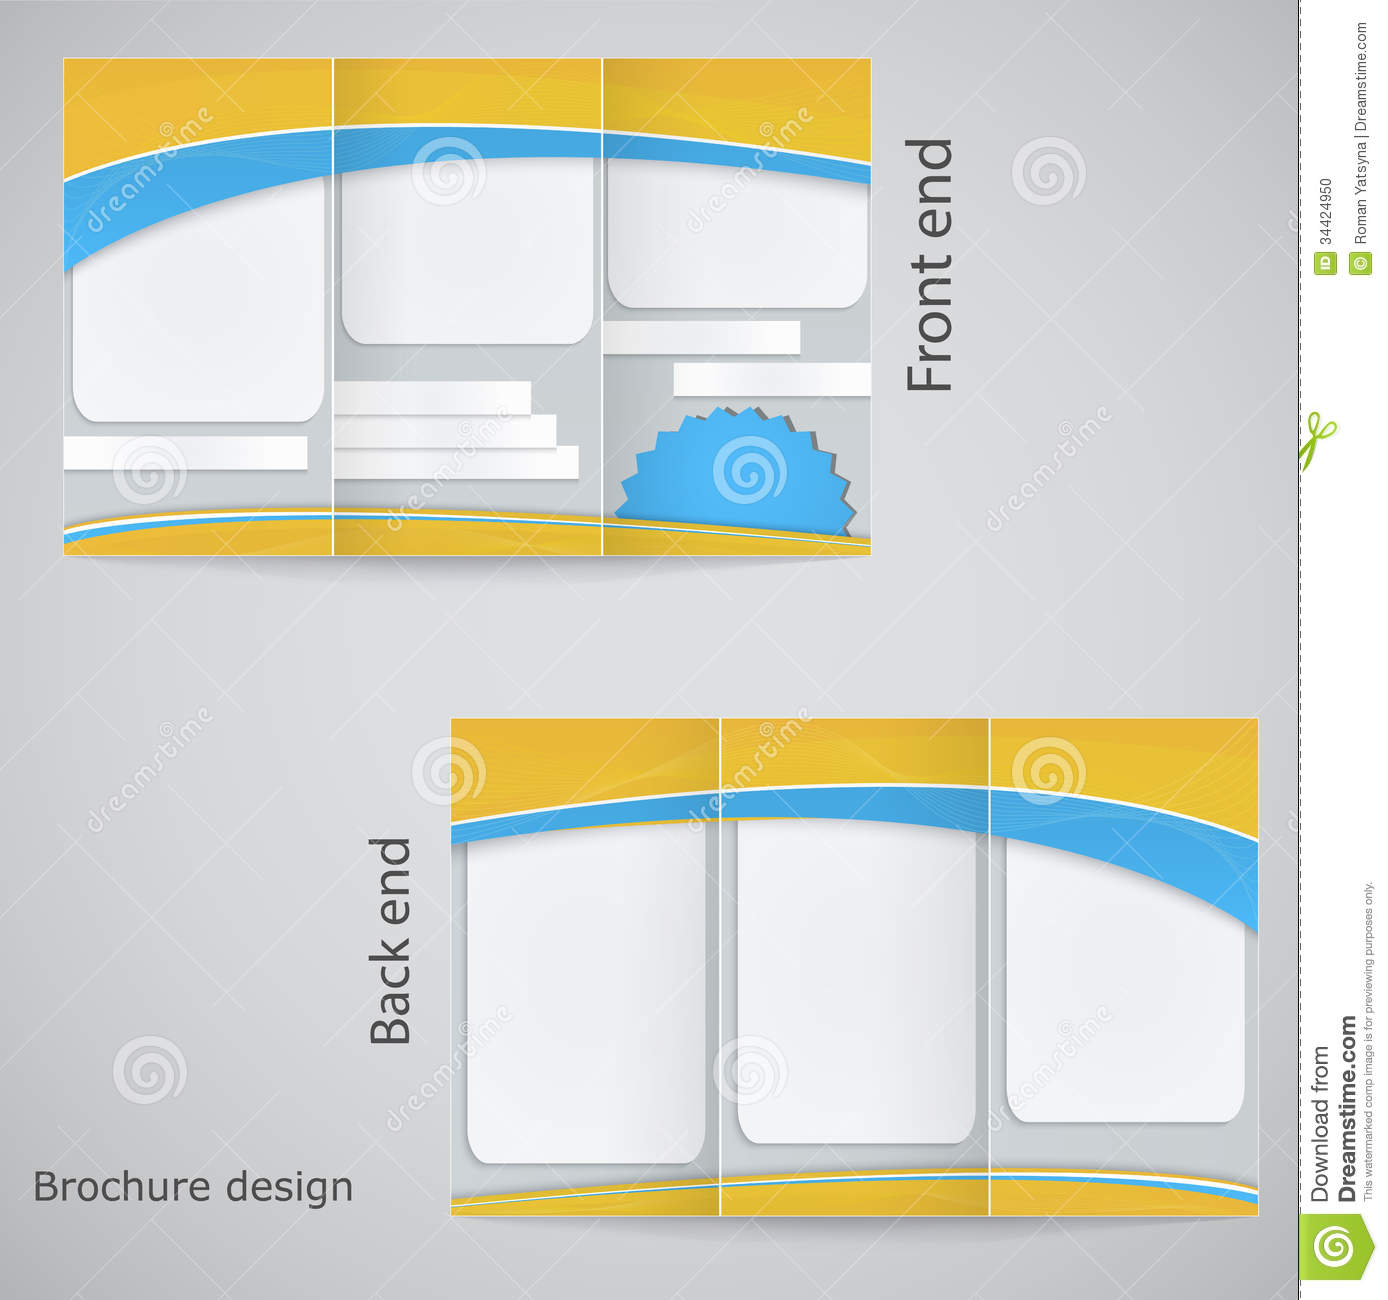 tri fold brochure design templates - tri fold brochure design stock vector image of branding